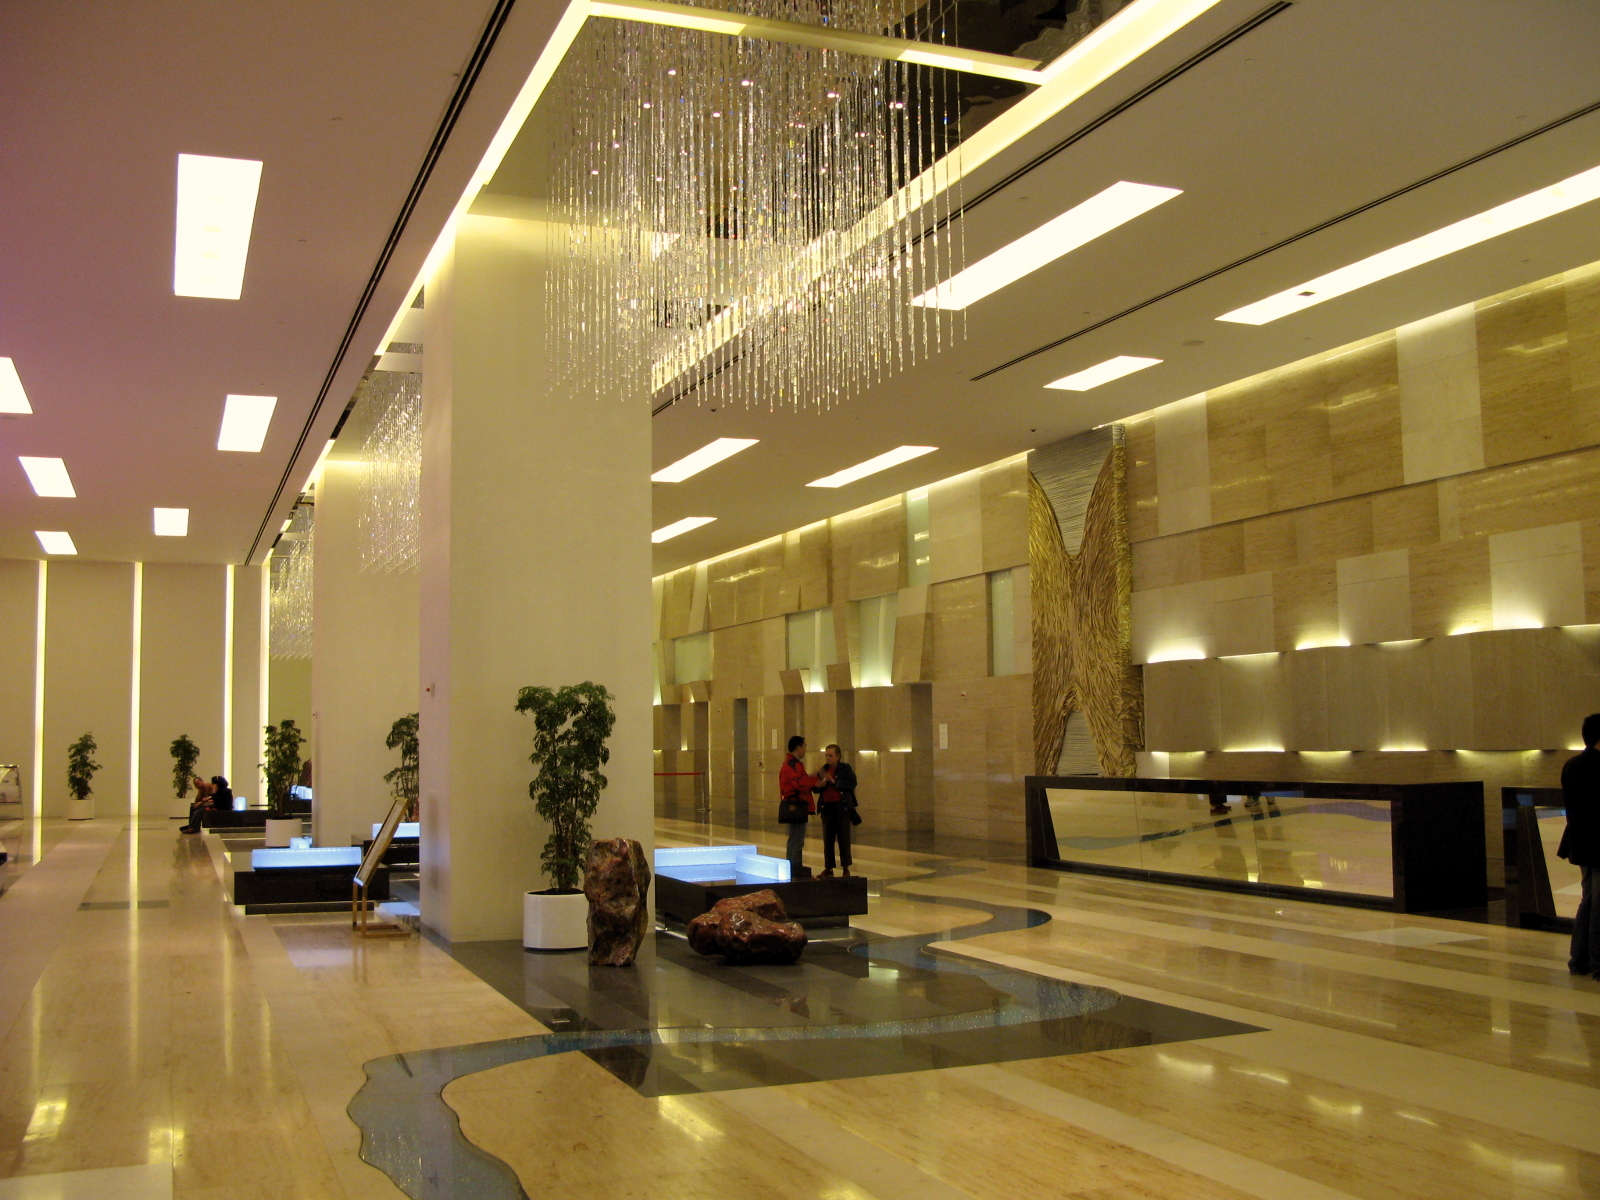 File:Hotel Lobby 20080327 large.jpg - Wikimedia Commons